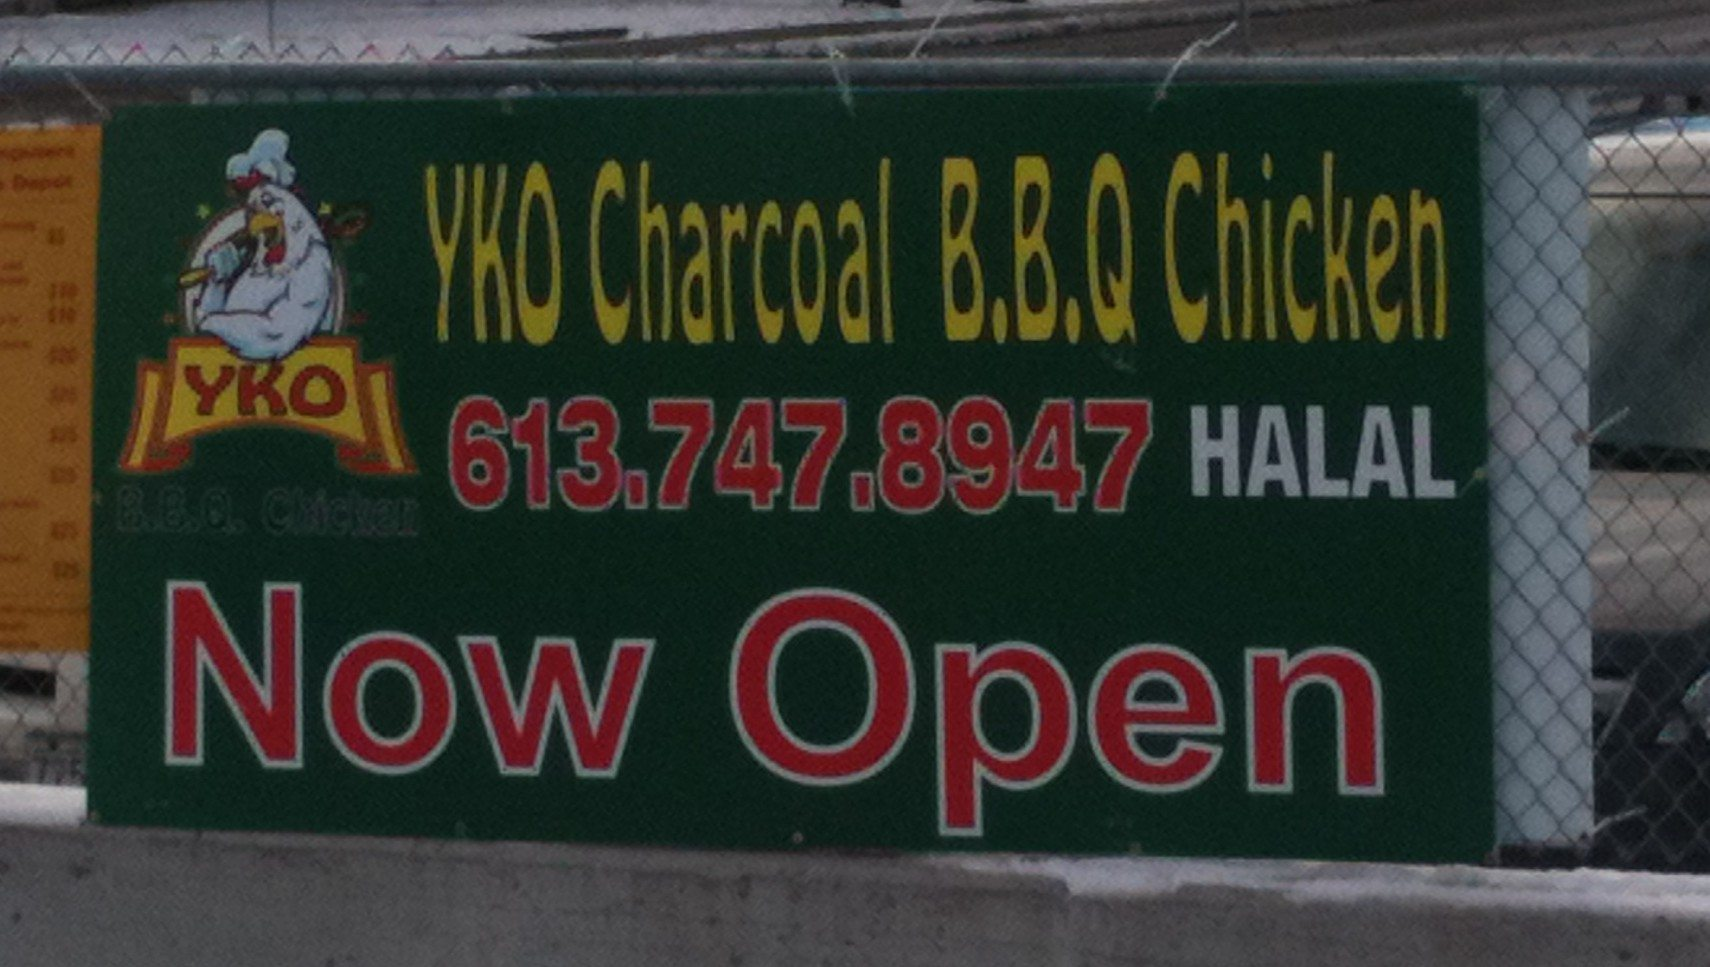 INTRODUCING: YKO charcoal barbecued chicken — rumours confirmed: Ottawa's authentic West African chicken shack is back